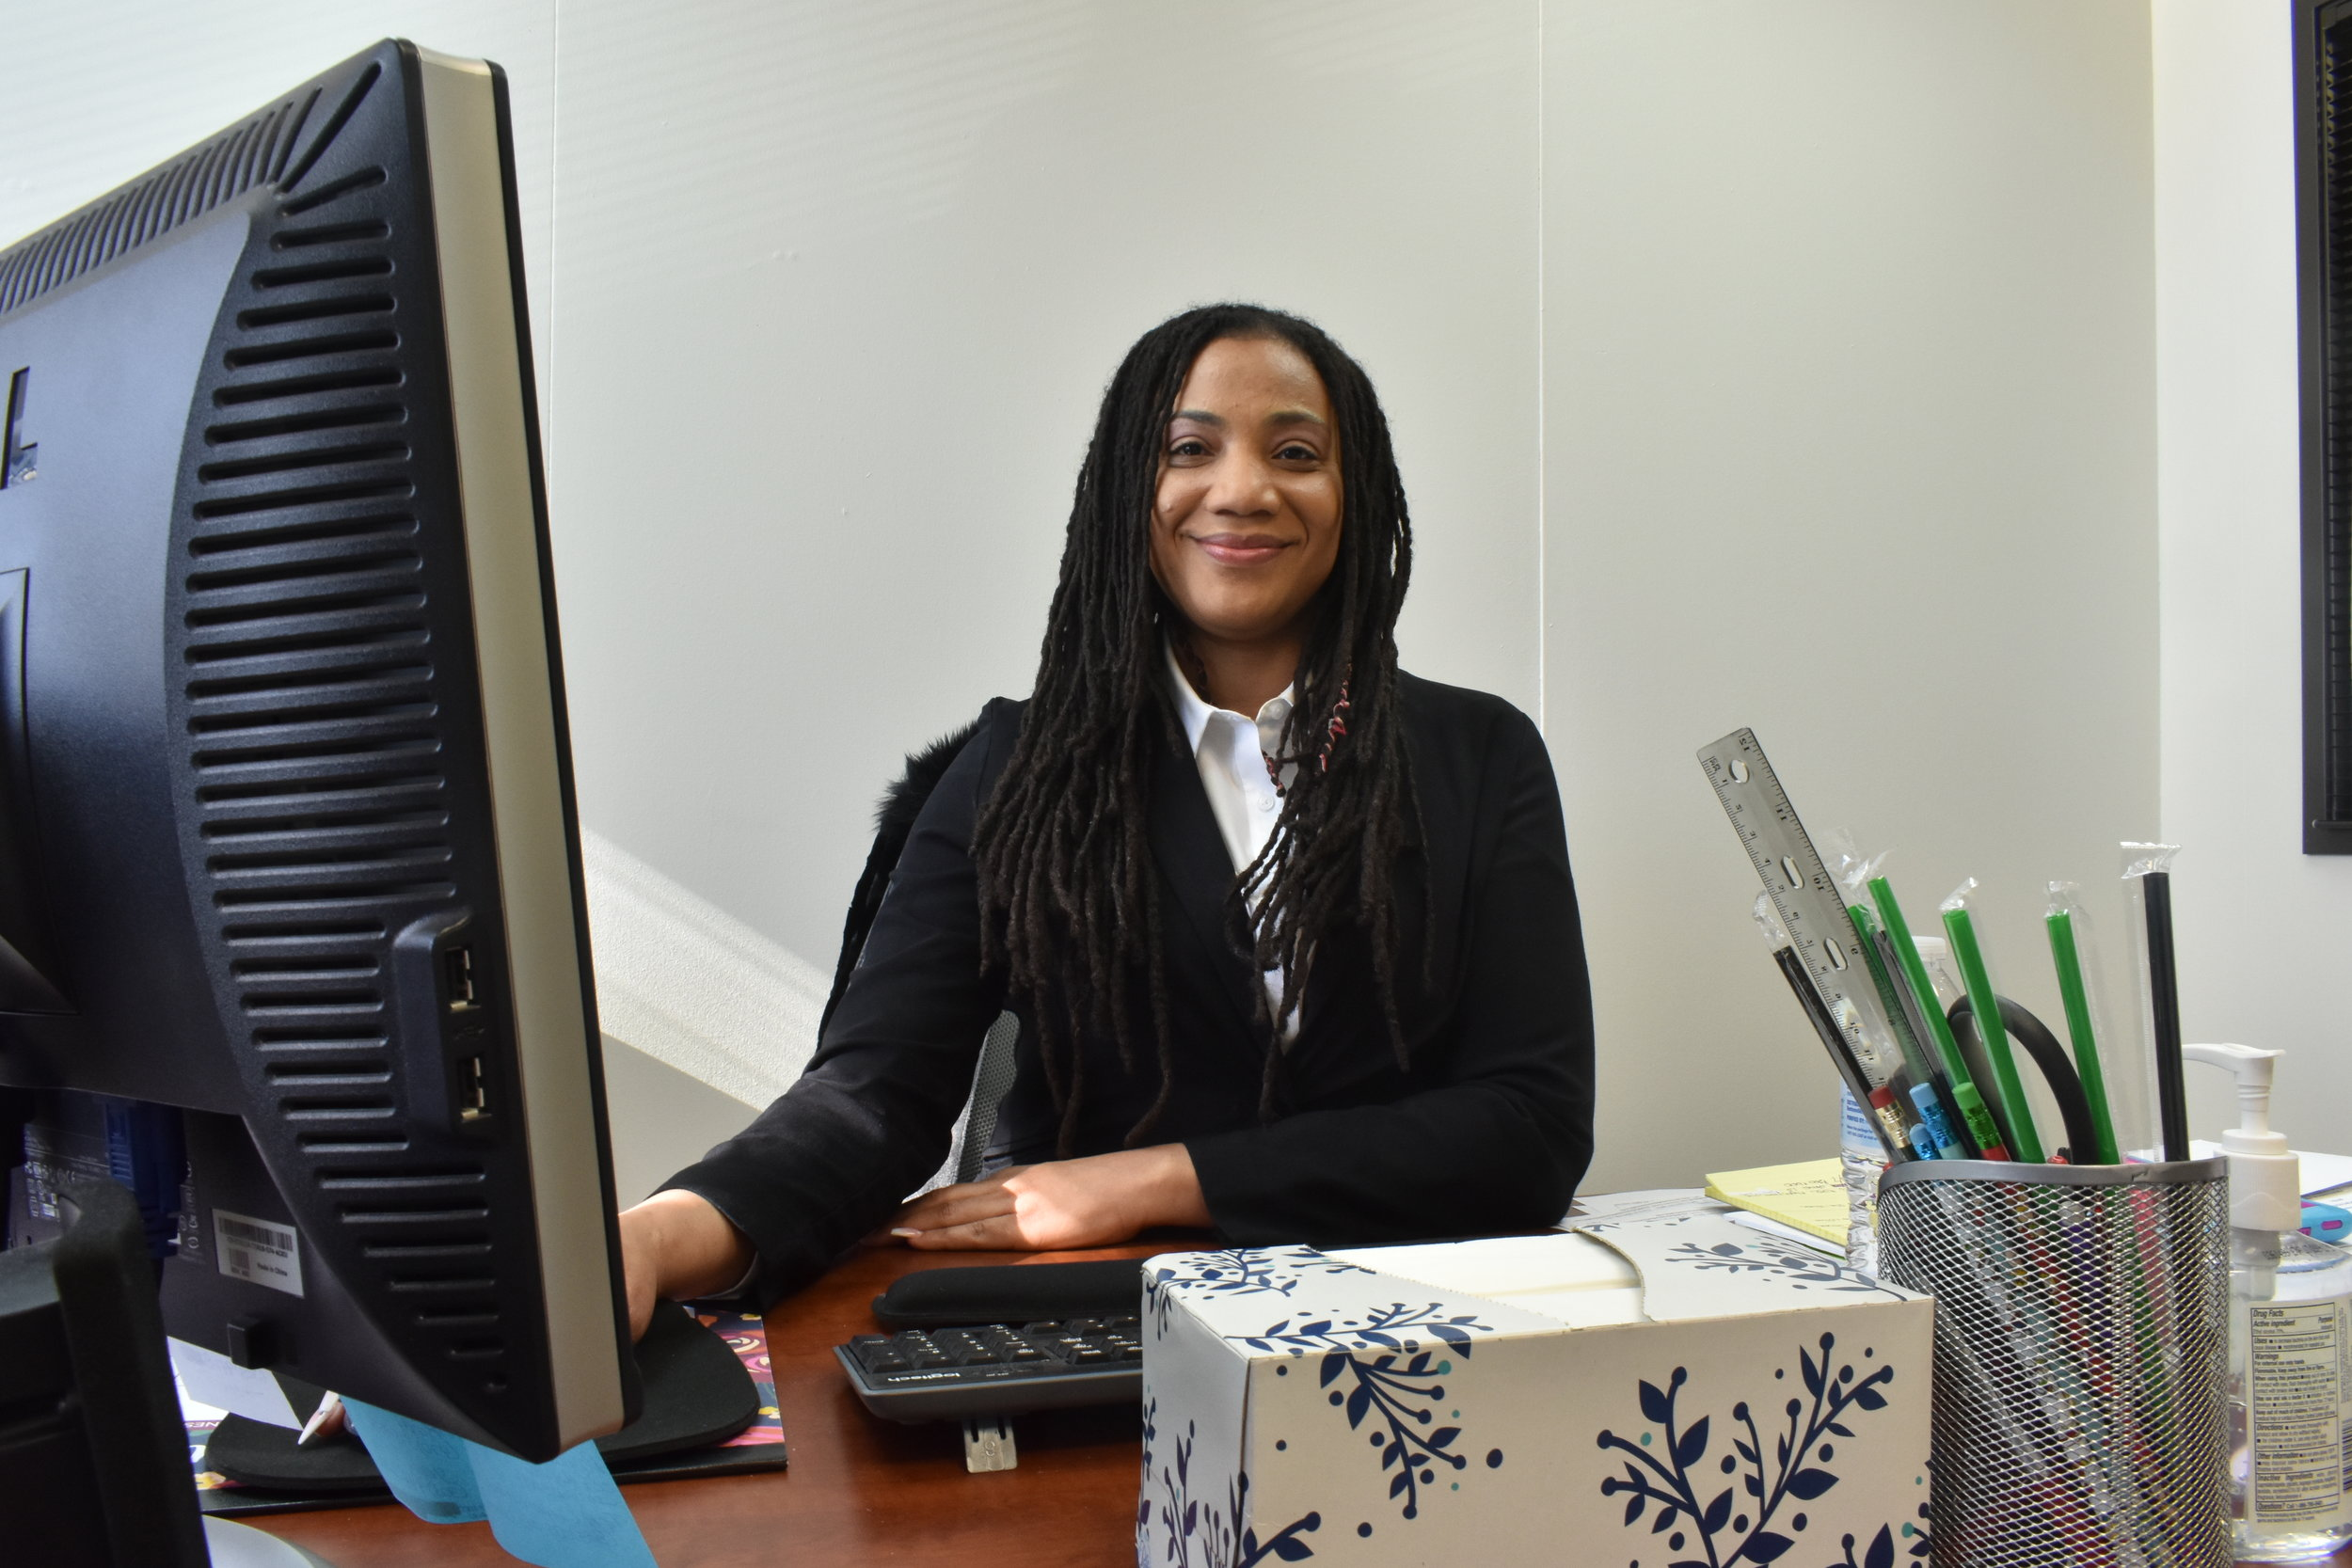 DeTonia Gooden in her office at Advanced Safety Consulting. Gooden started working with the company after graduating from the WorkNow program in July 2018. (Credit: Sarah Ford)